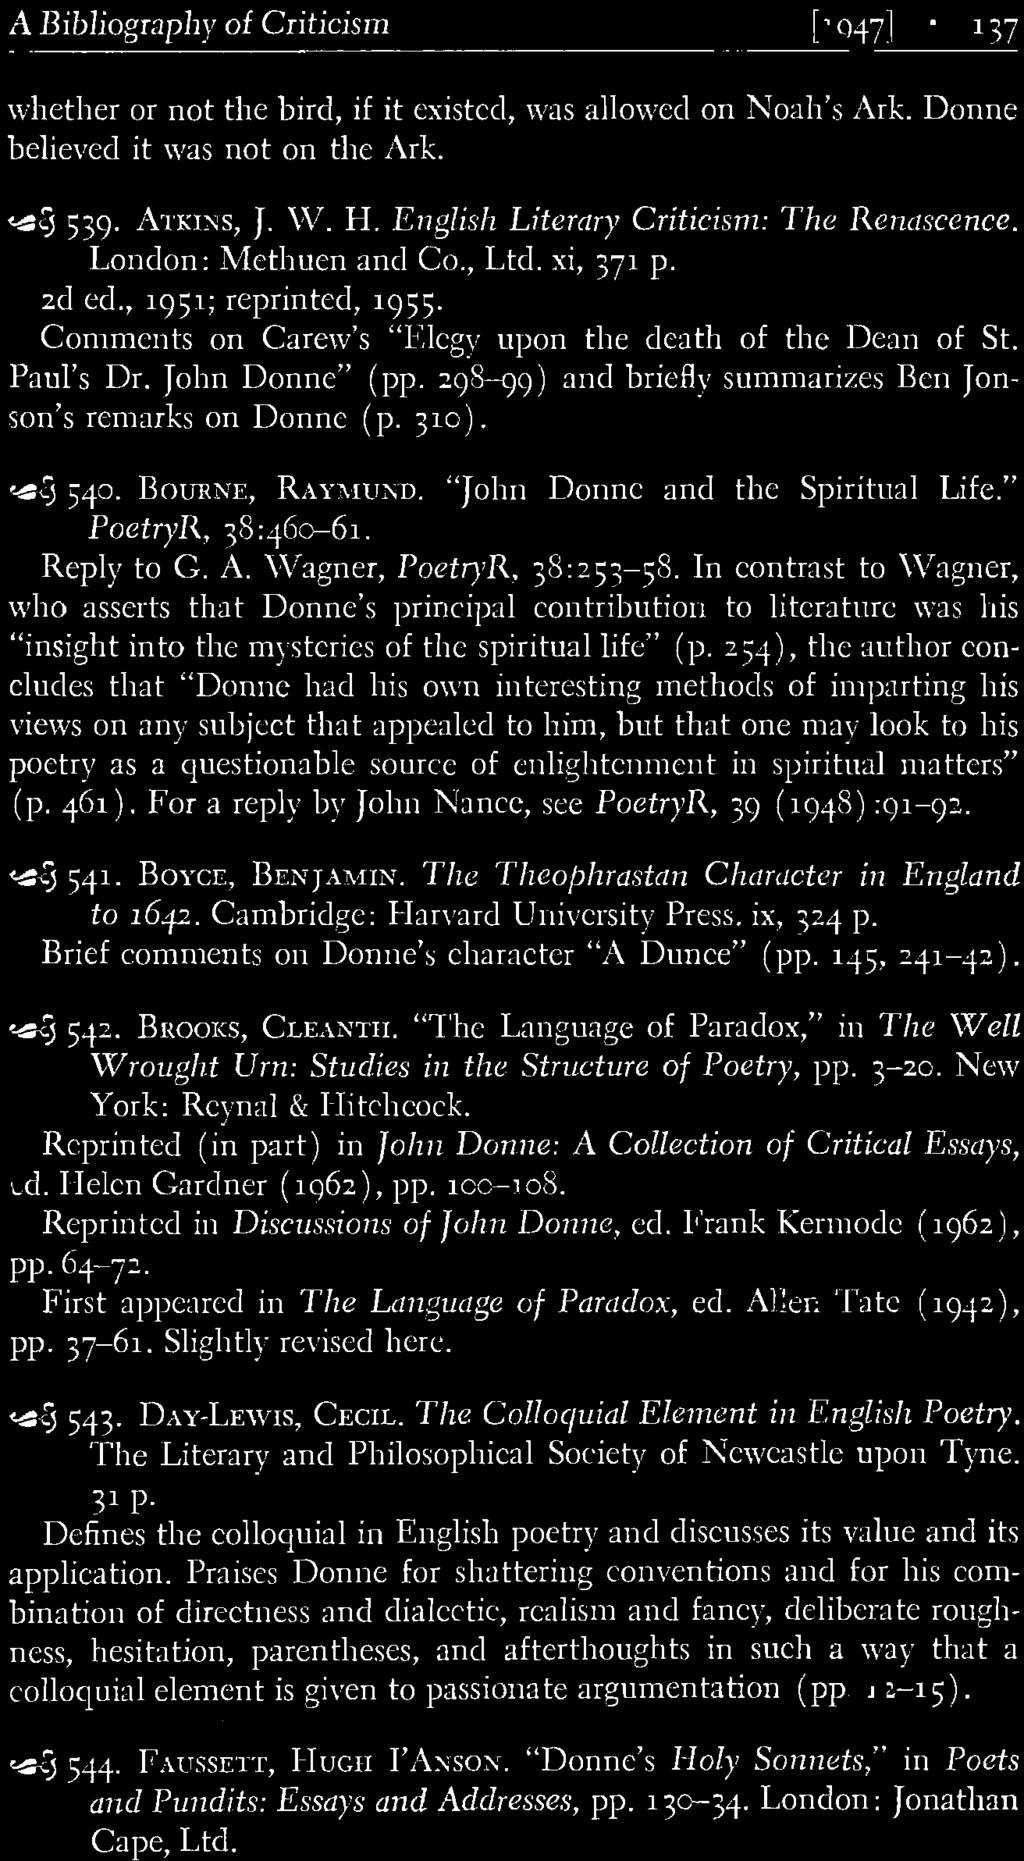 Helen Gardner (1962), pp. 100-108. Reprinted in Discussions of John Donne, ed. Frank Kermode (1962), pp.64-72. First appeared in The Language of Paradox, ed. Allen Tate (1942), pp. 37-61.